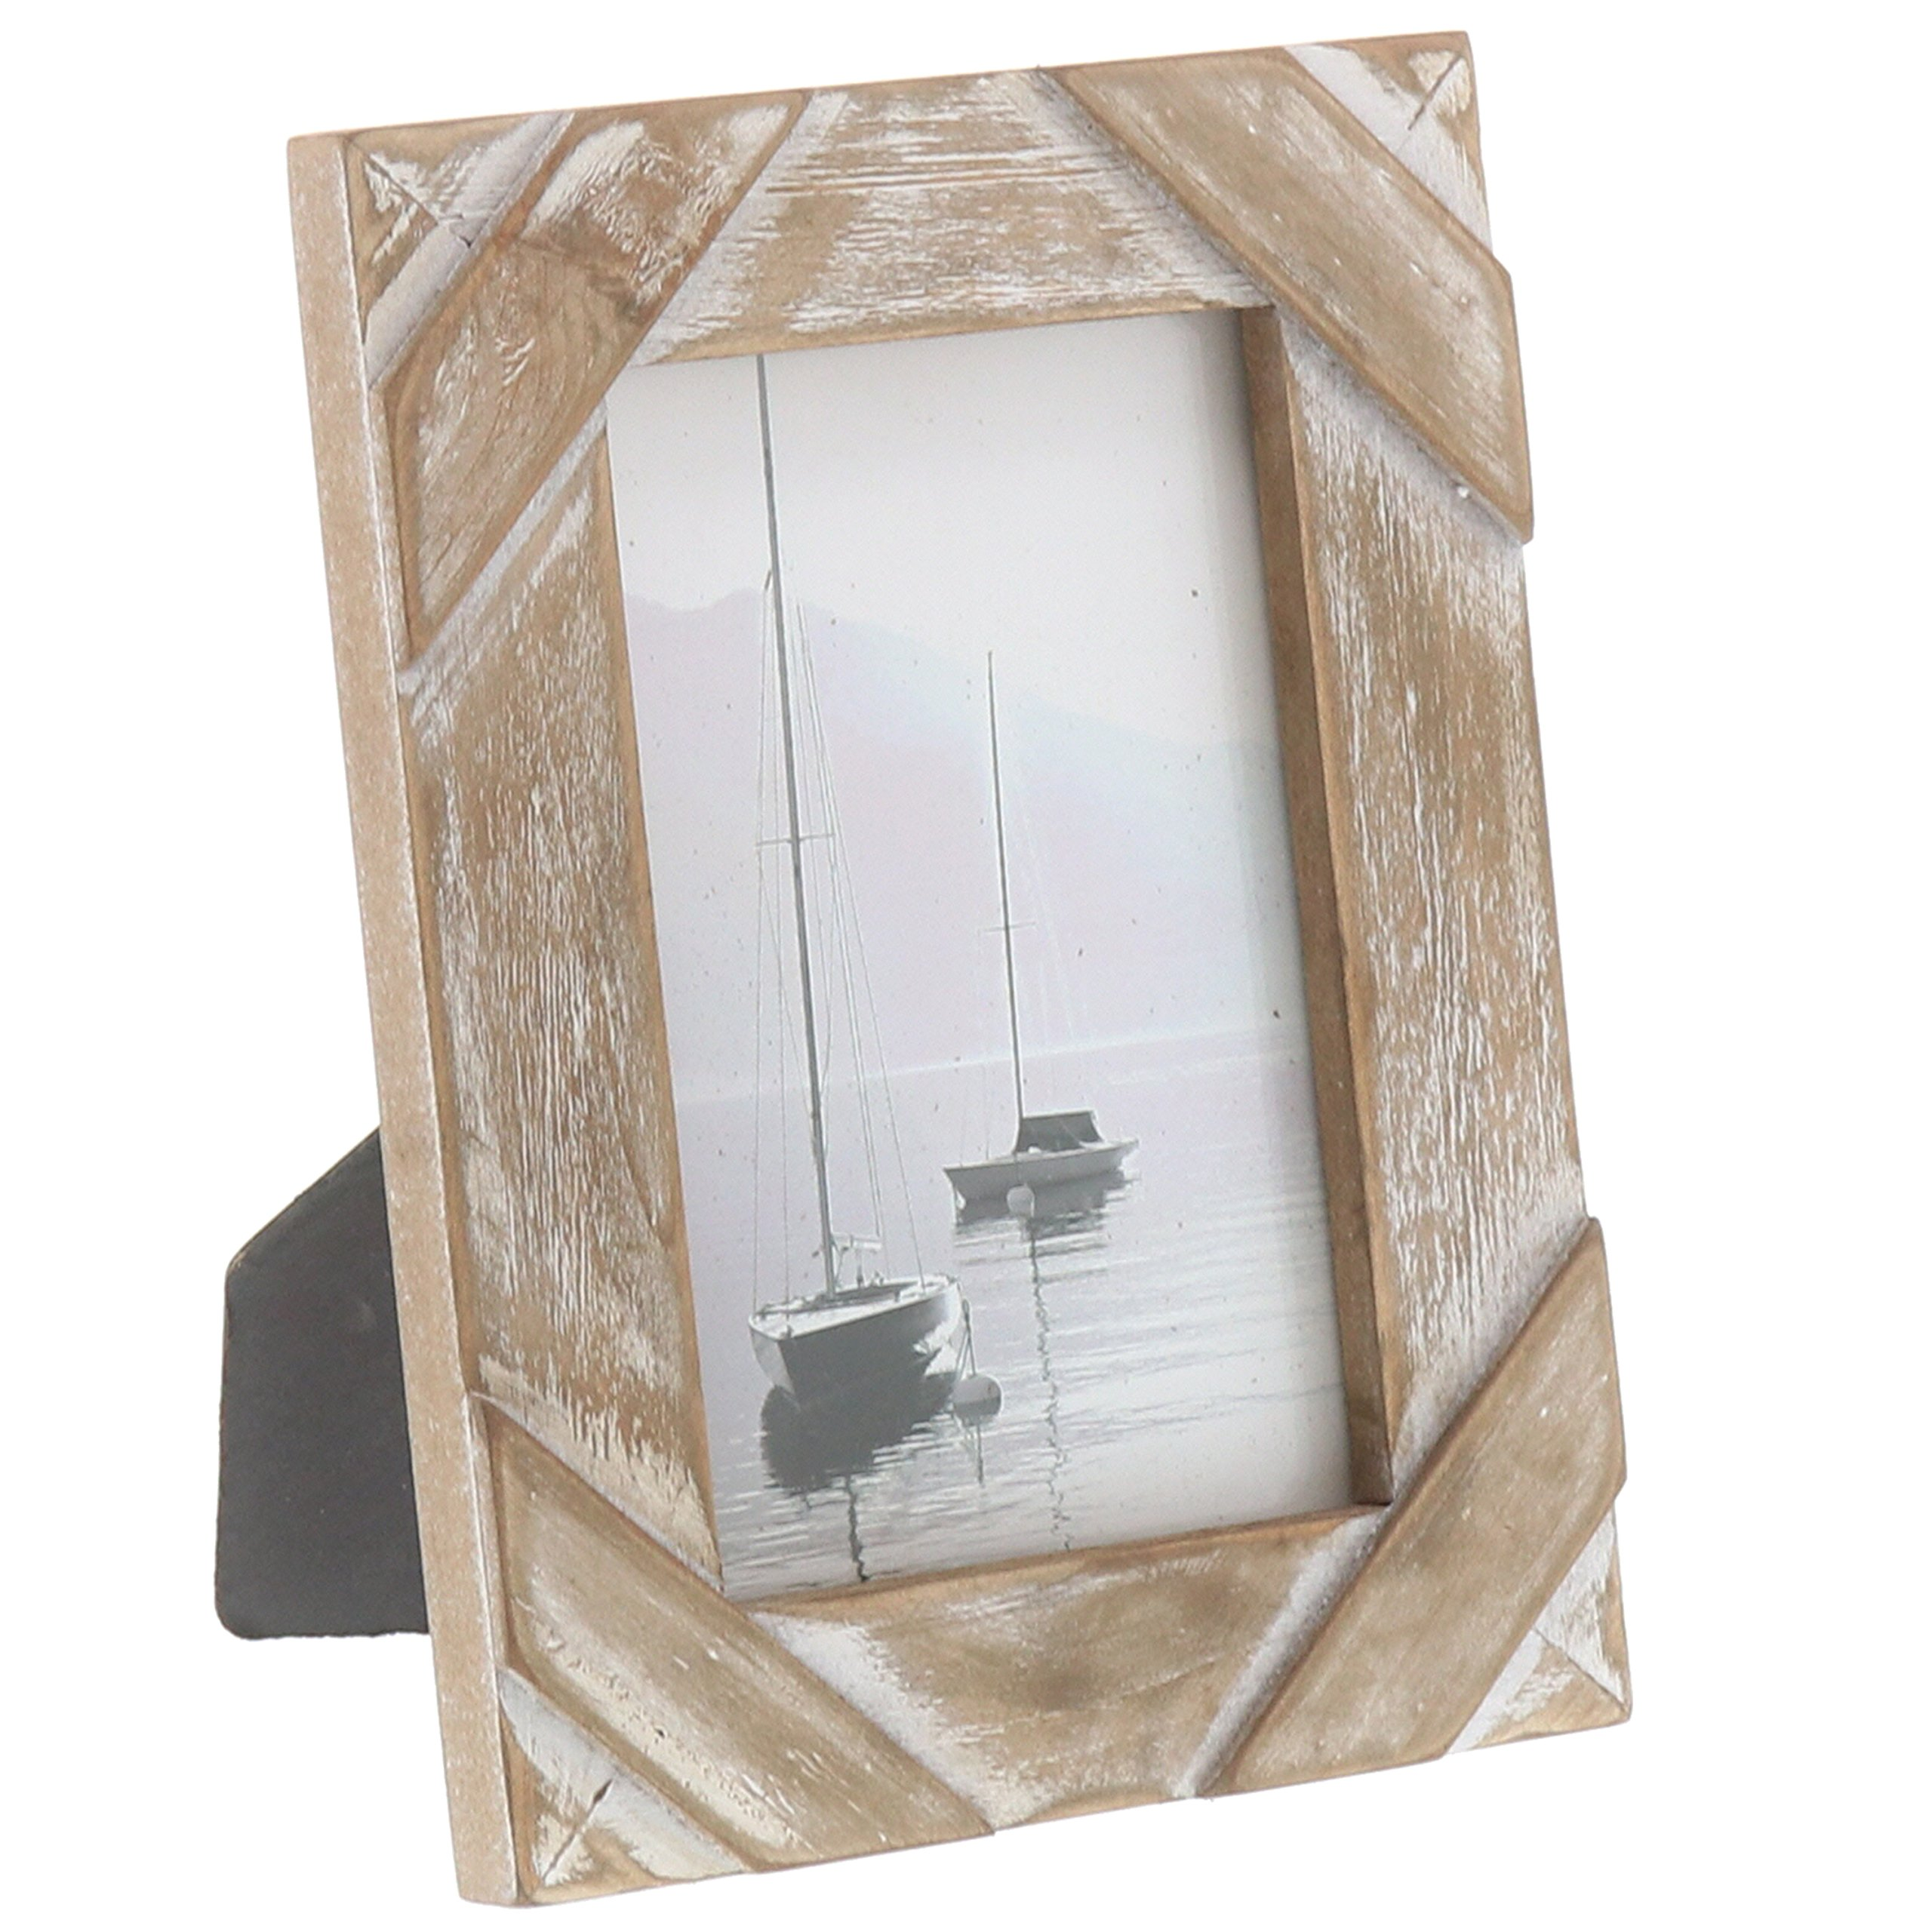 Barnyard Designs Rustic Farmhouse Distressed Picture Frame 4'' x 6'' Wood Photo by Barnyard Designs